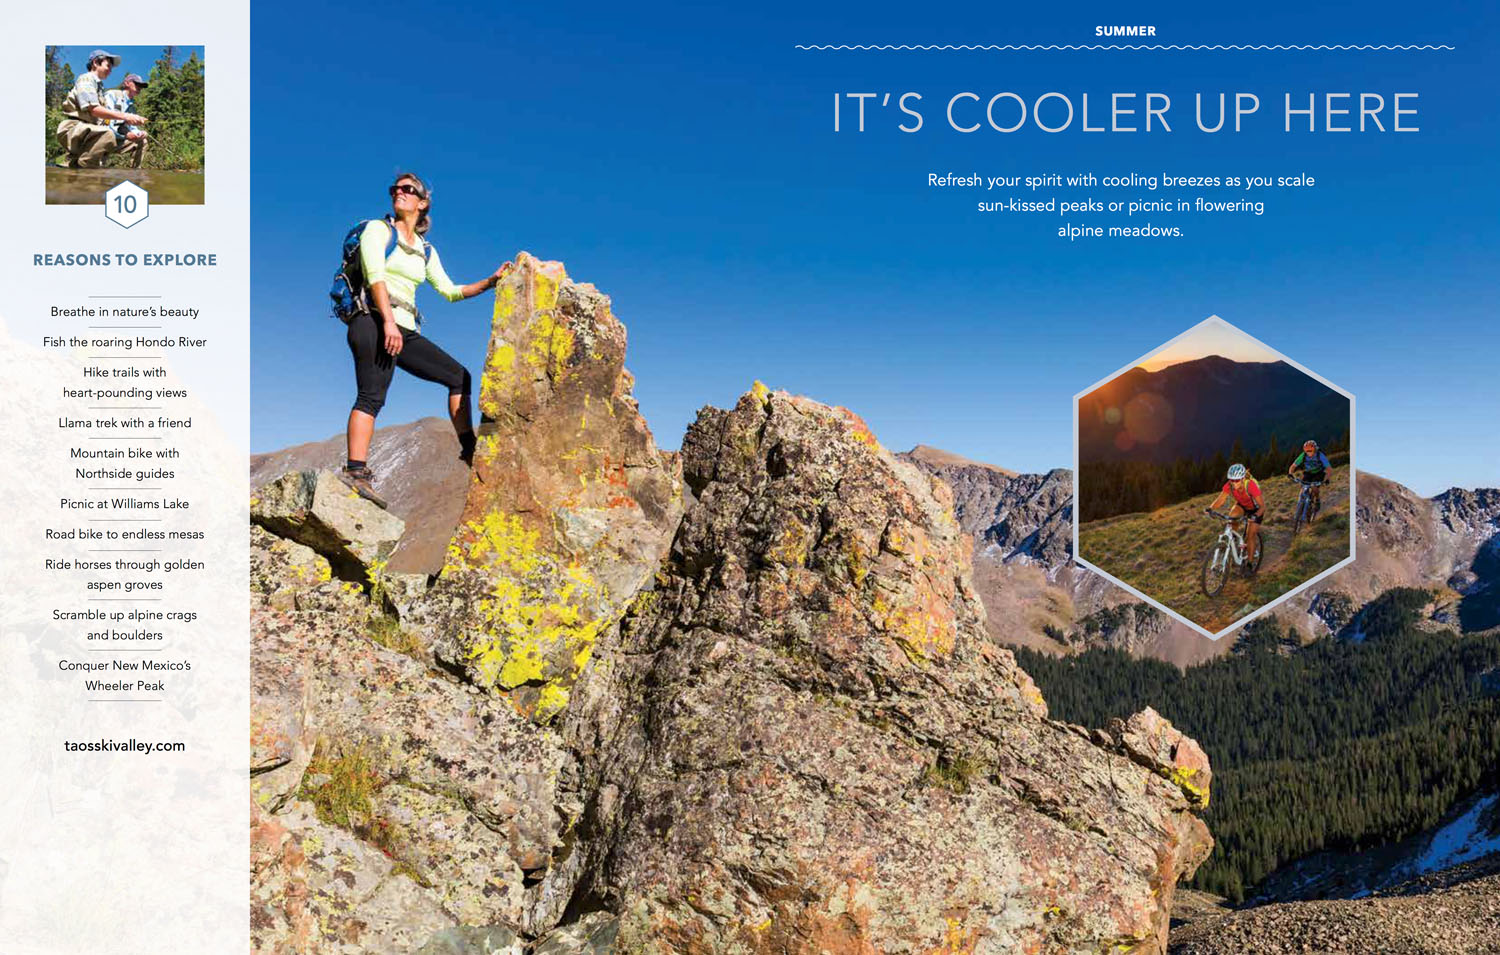 Taos_Ski_Valley_Visitor_Guide_2015_Summer_DeYoung